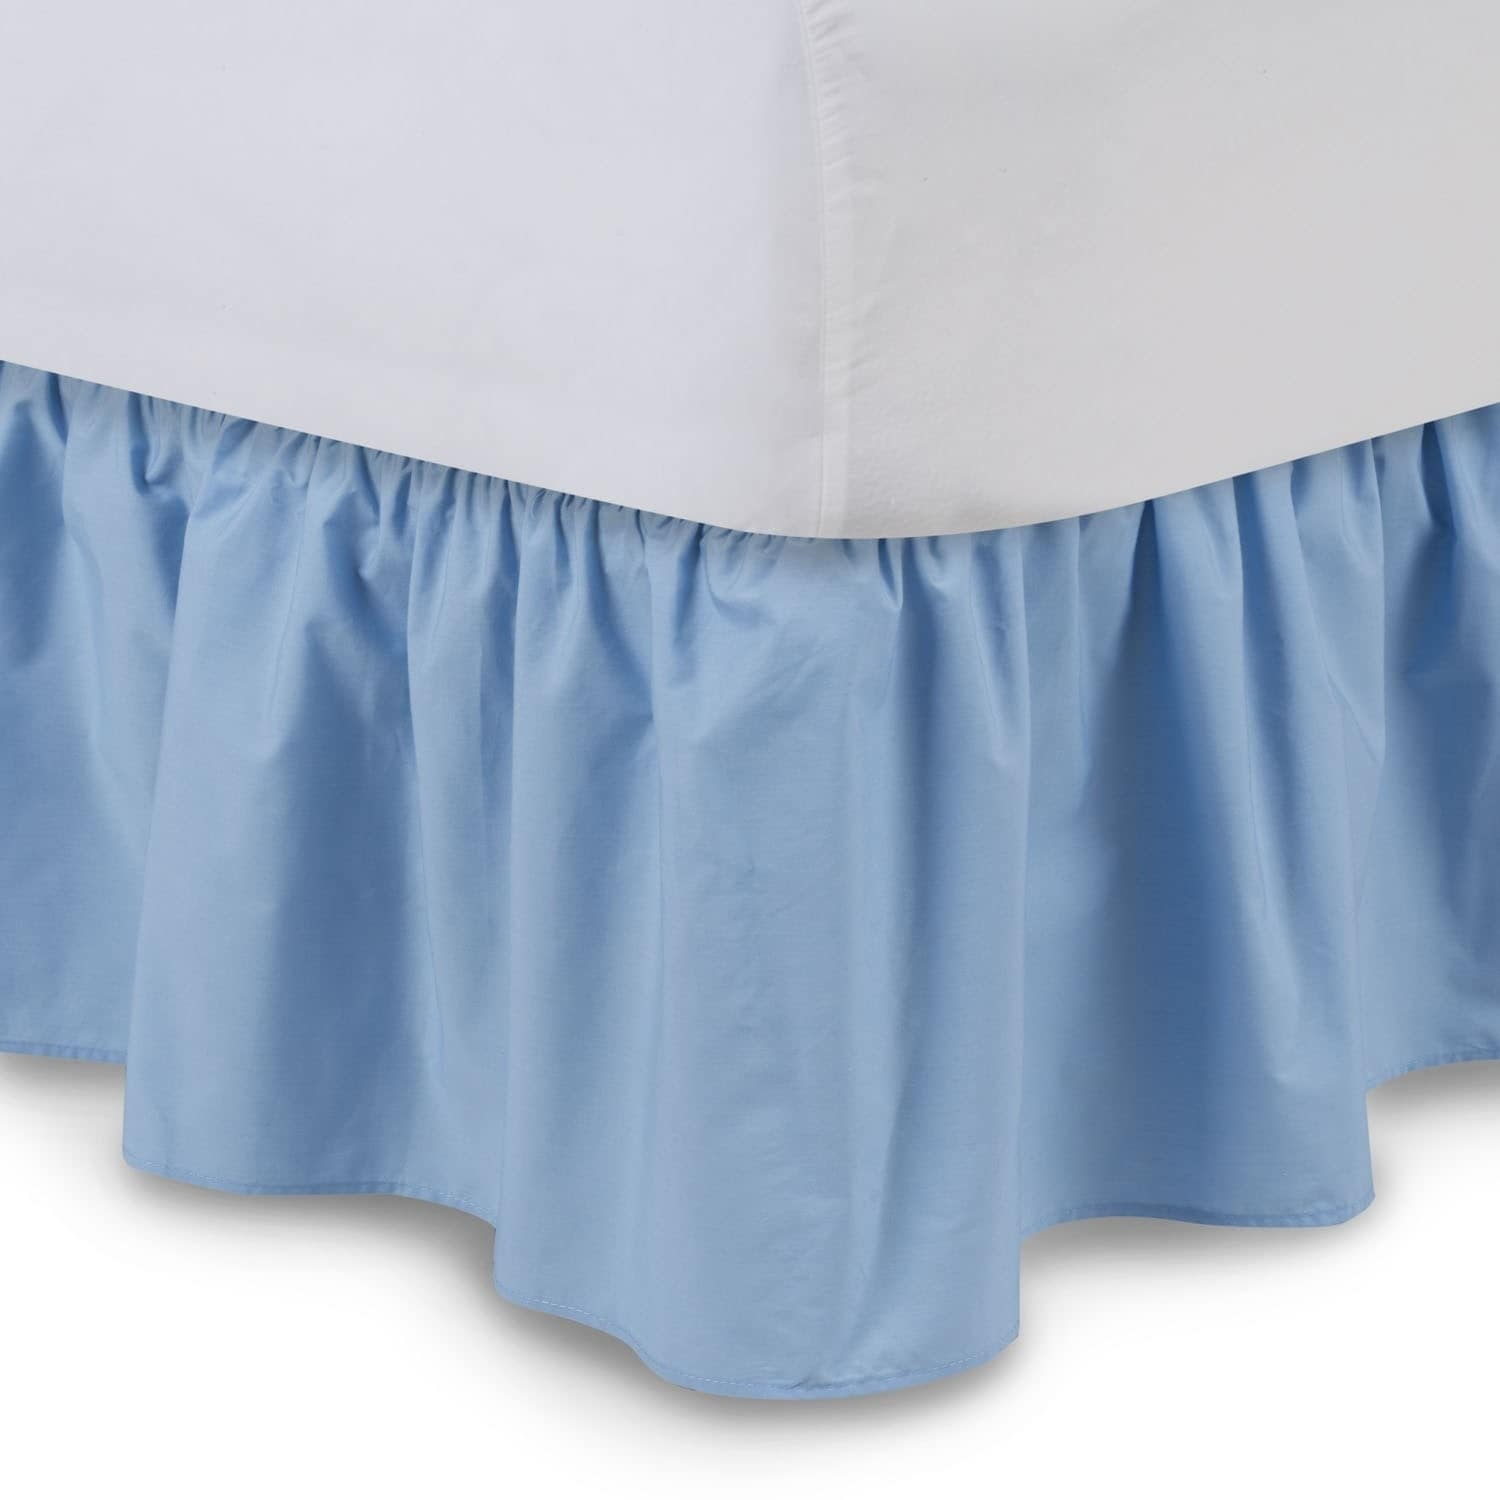 Harmony Lane Ruffled Bed Skirt Dust Ruffle (14 Inch - jew...